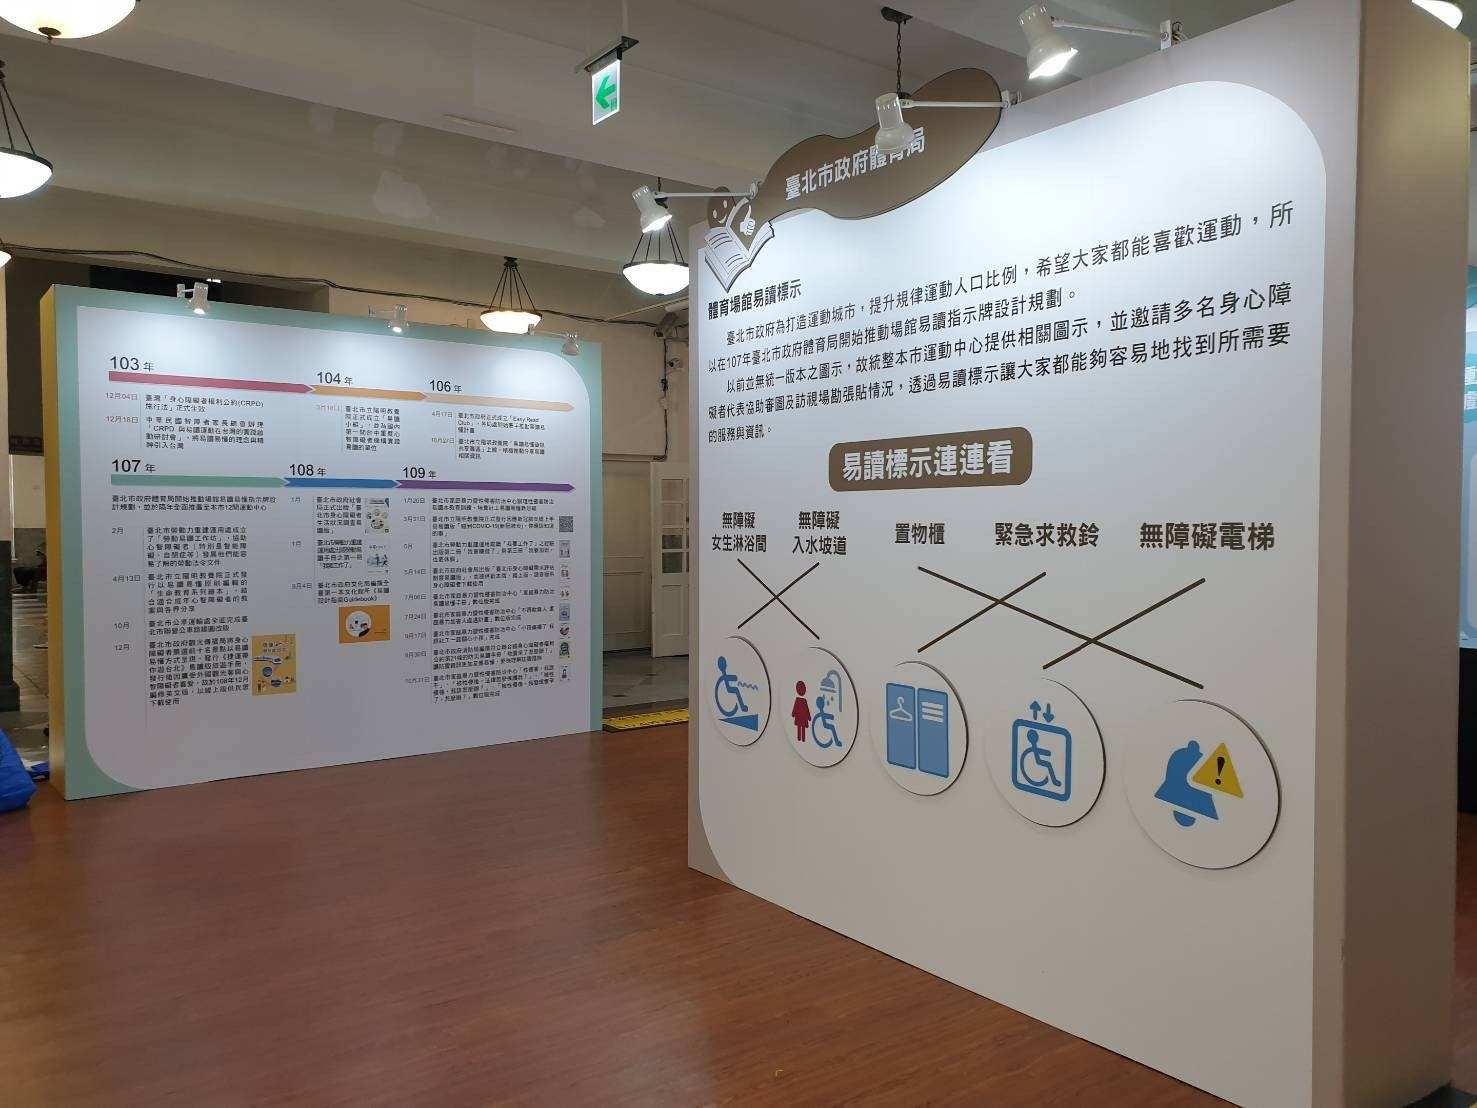 The Easy Read achievement exhibition was held in Taipei City Government Department of Health Former Site